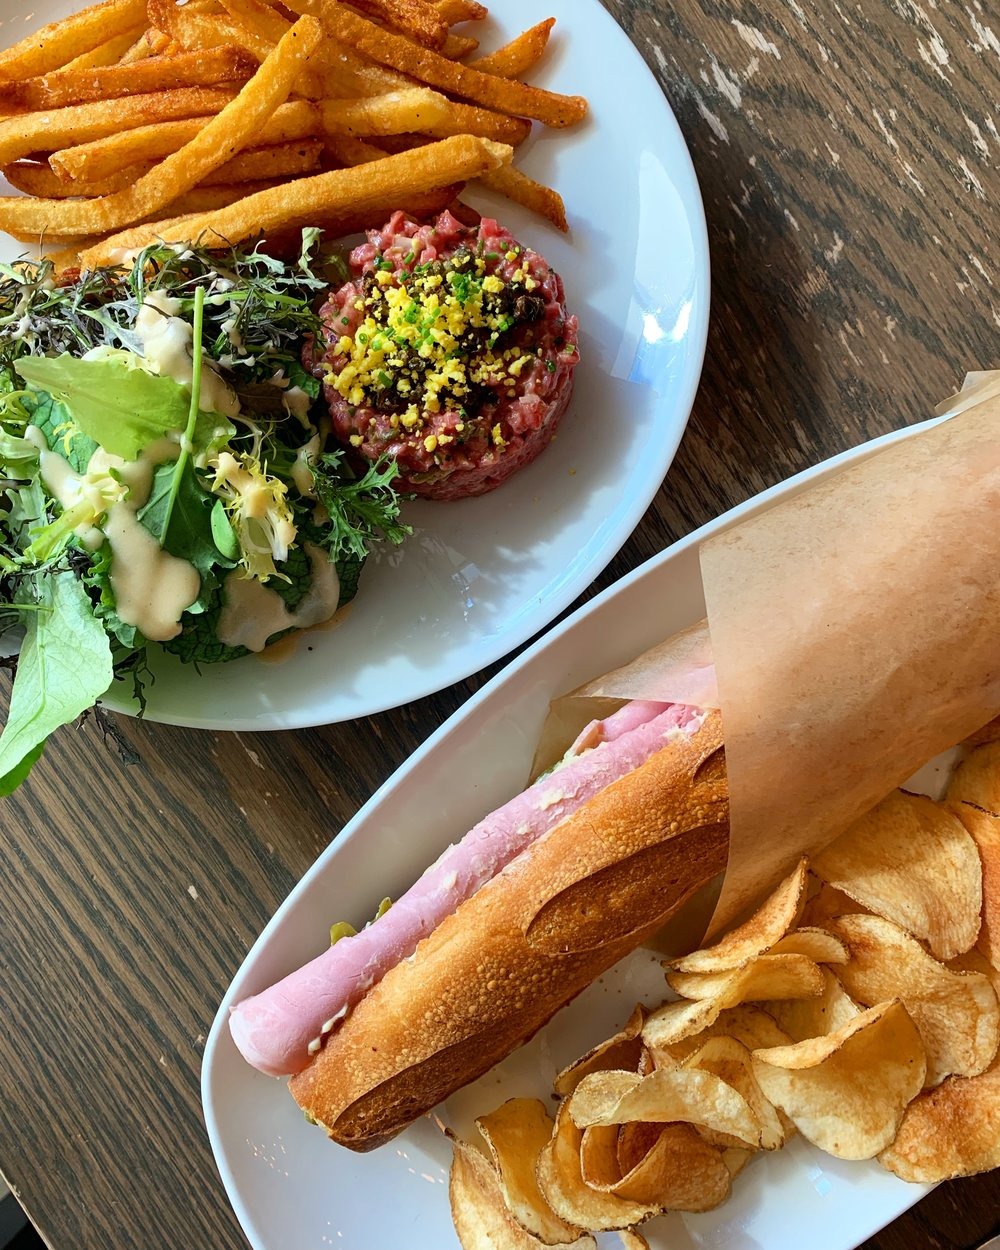 Two delicious classics on the lunch menu at convivial, beef tartare and jambon beurre with homemade chips. @convivialrestaurant Photo by AJ Dronkers.